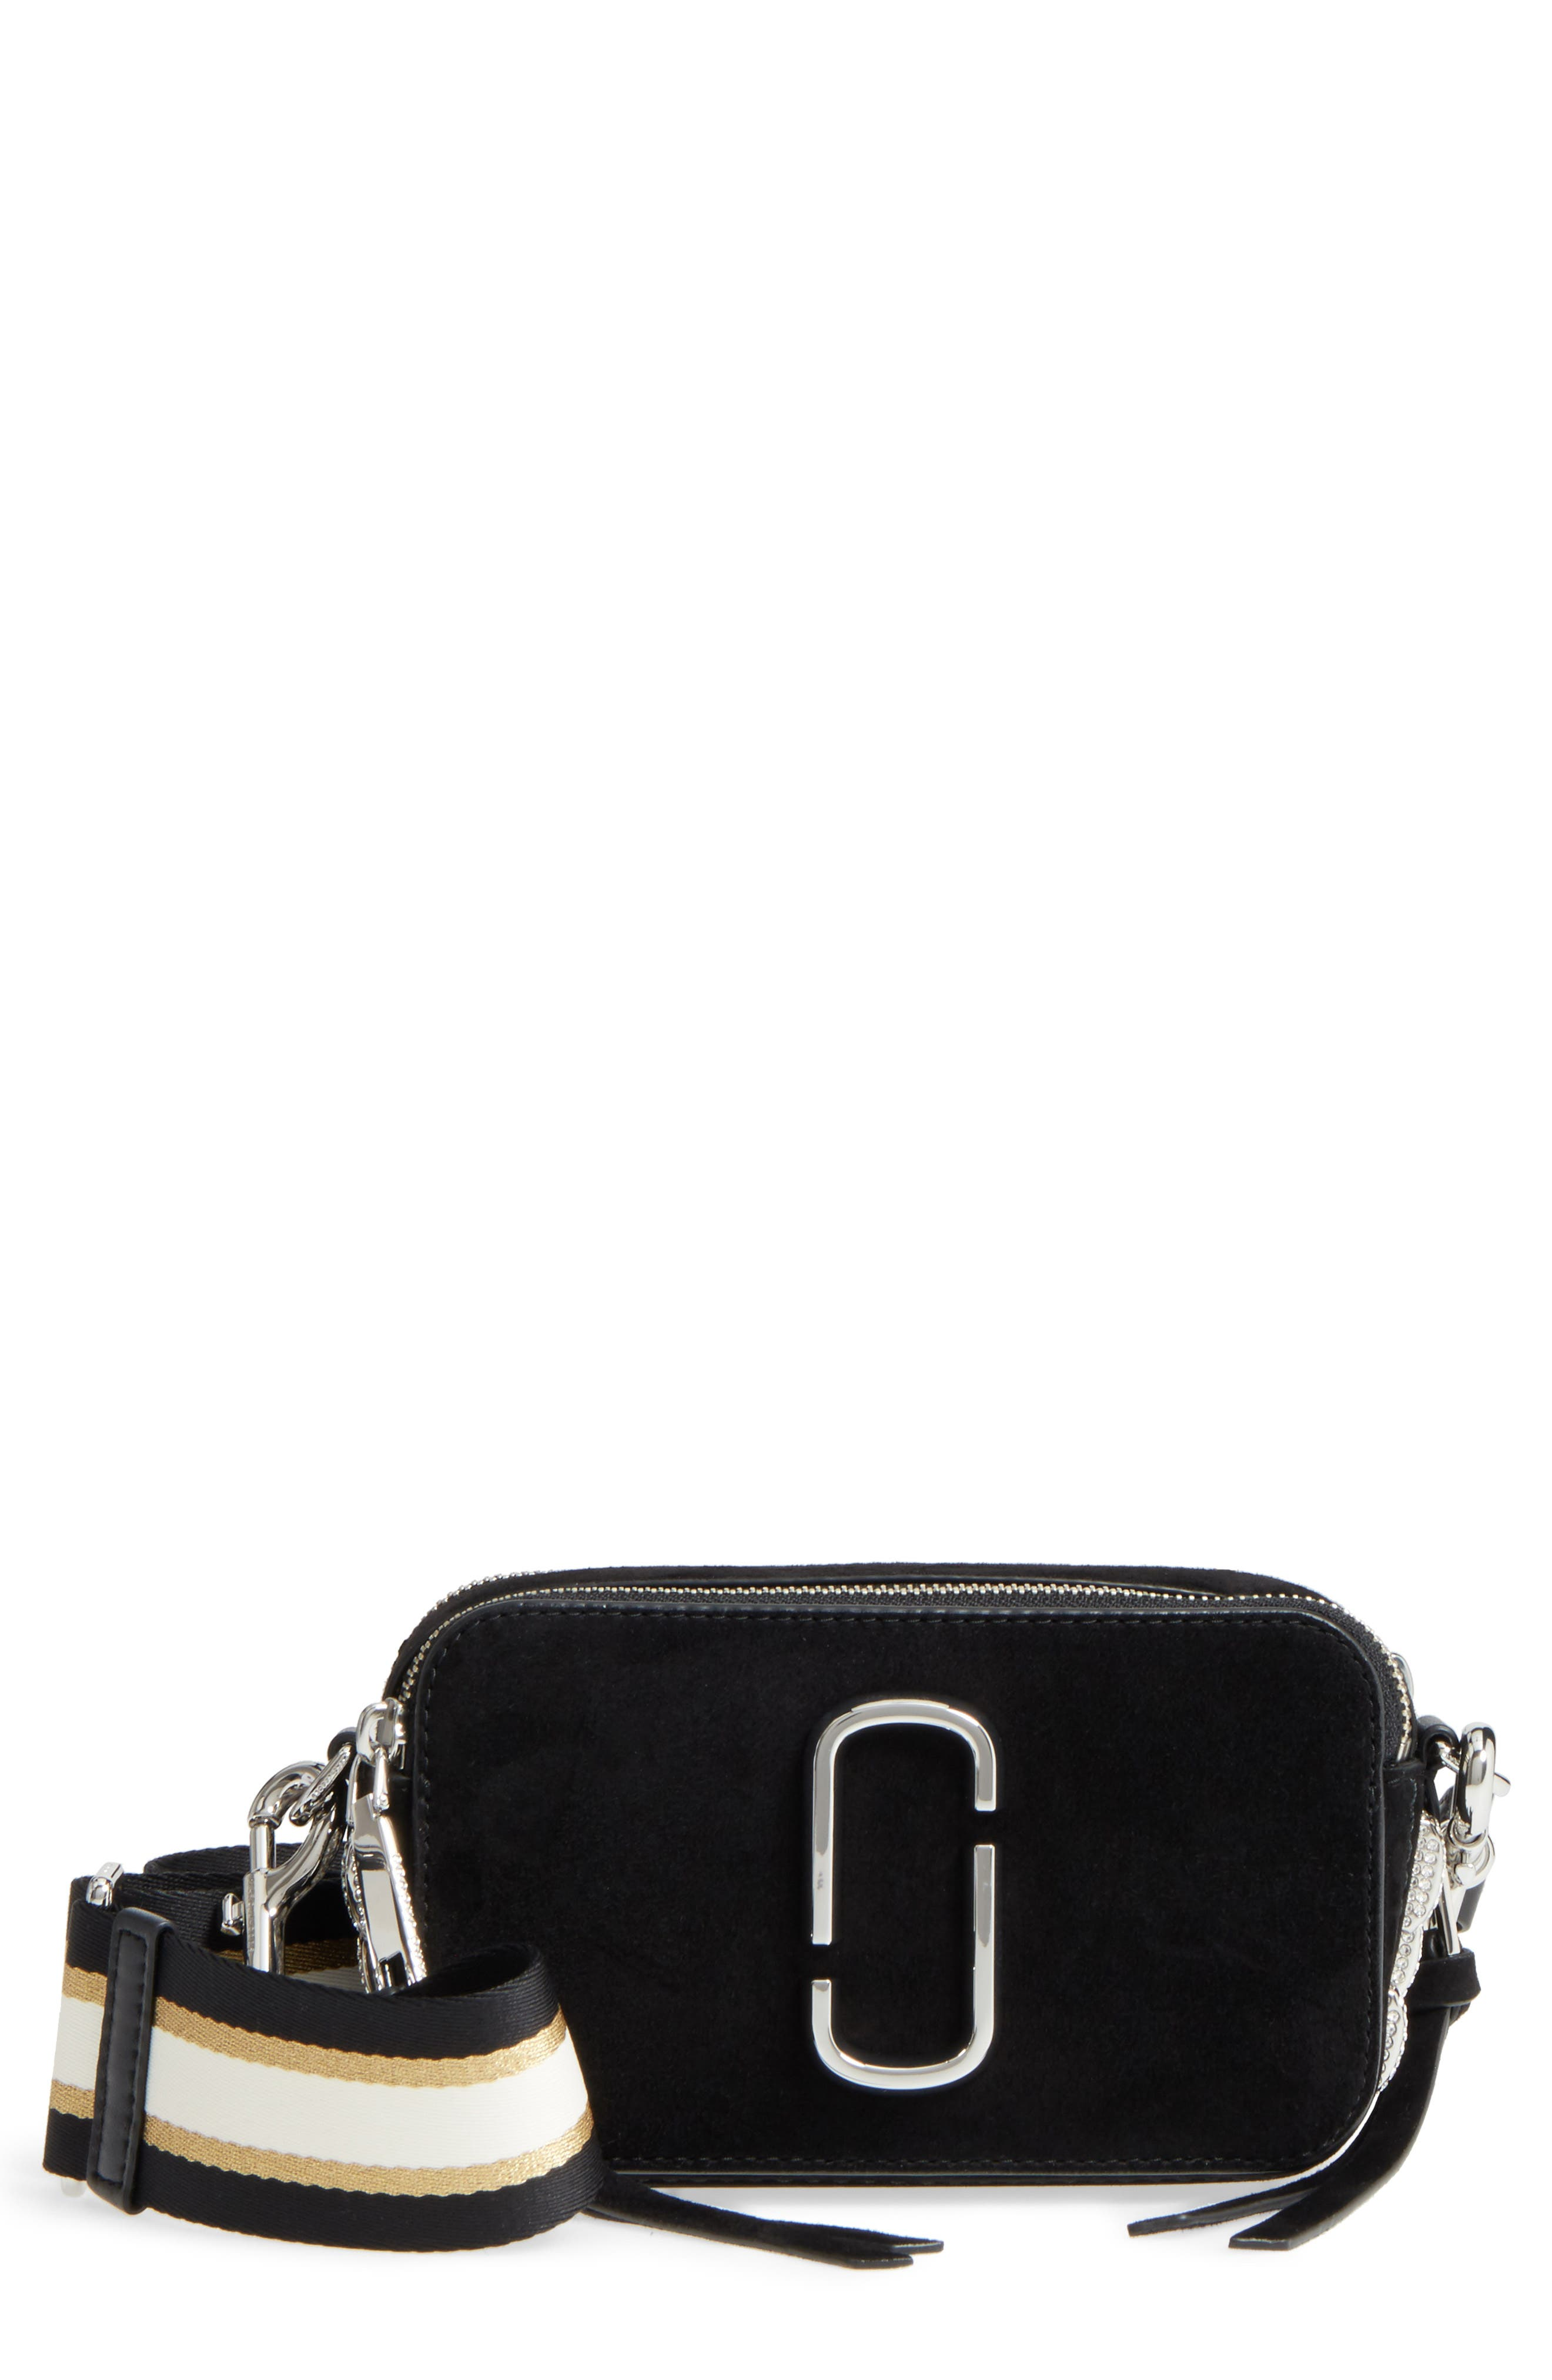 MARC JACOBS Snapshot Leather Pavé Chain Trim Crossbody Bag